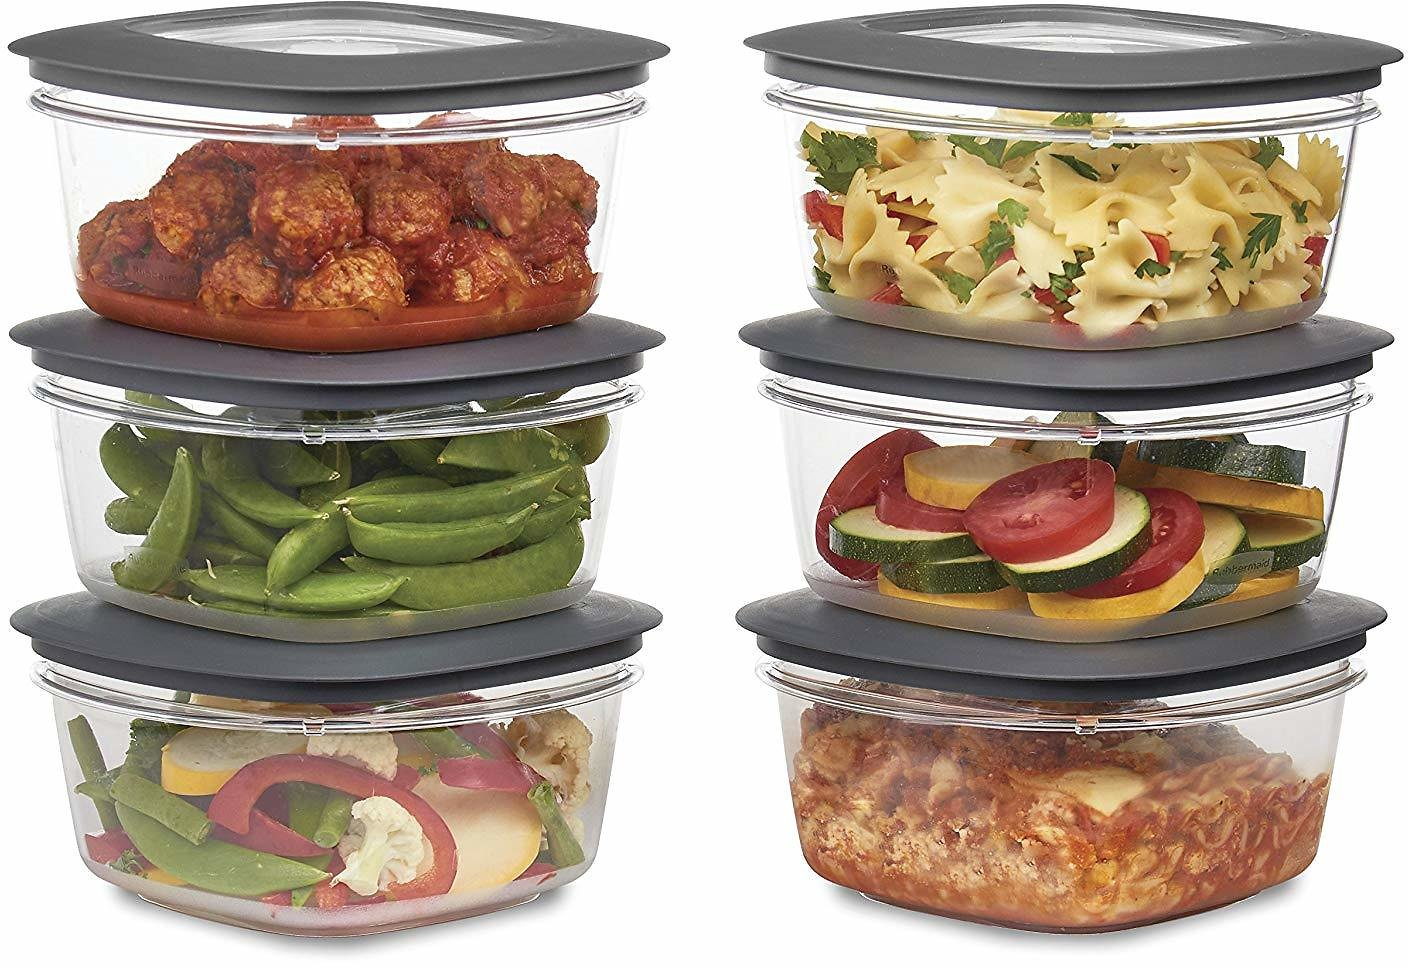 Rubbermaid Premier Food Storage Container, 5 Cup, 6-Pack, Grey